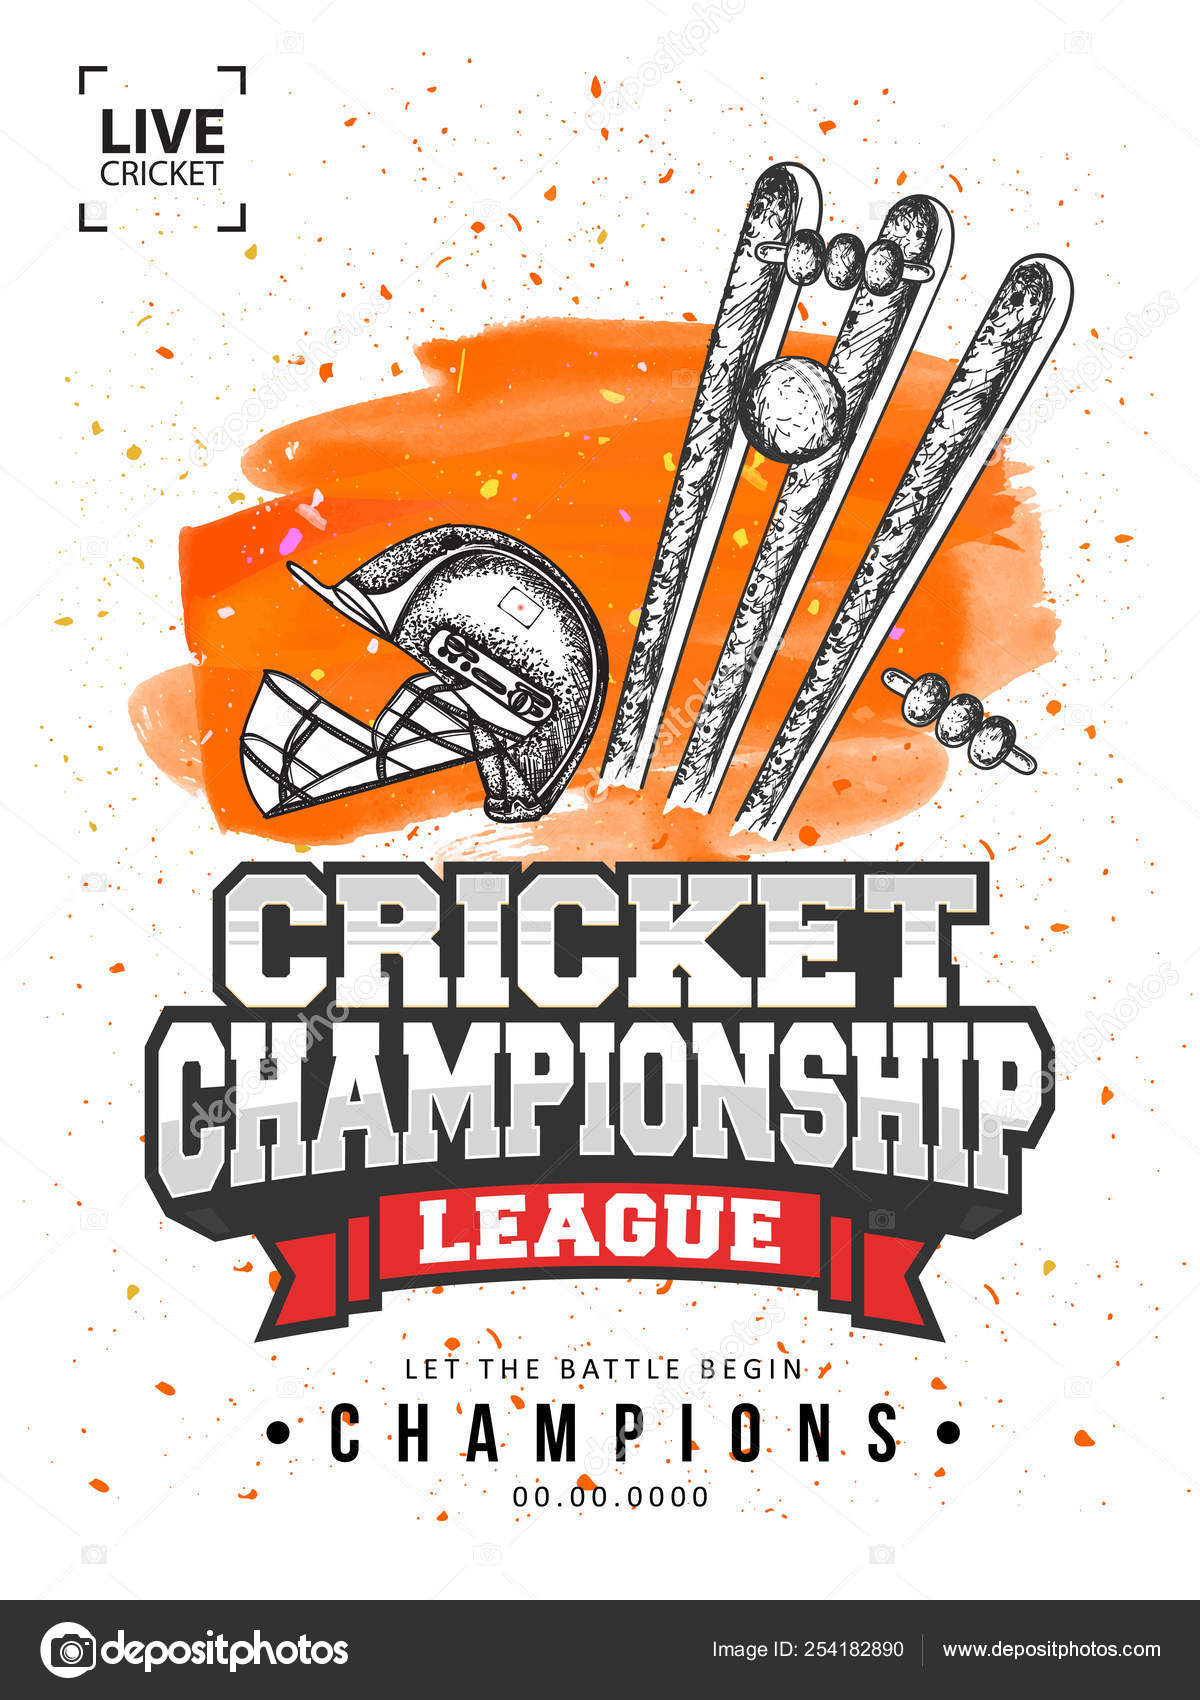 Live Cricket Championship League template or flyer design